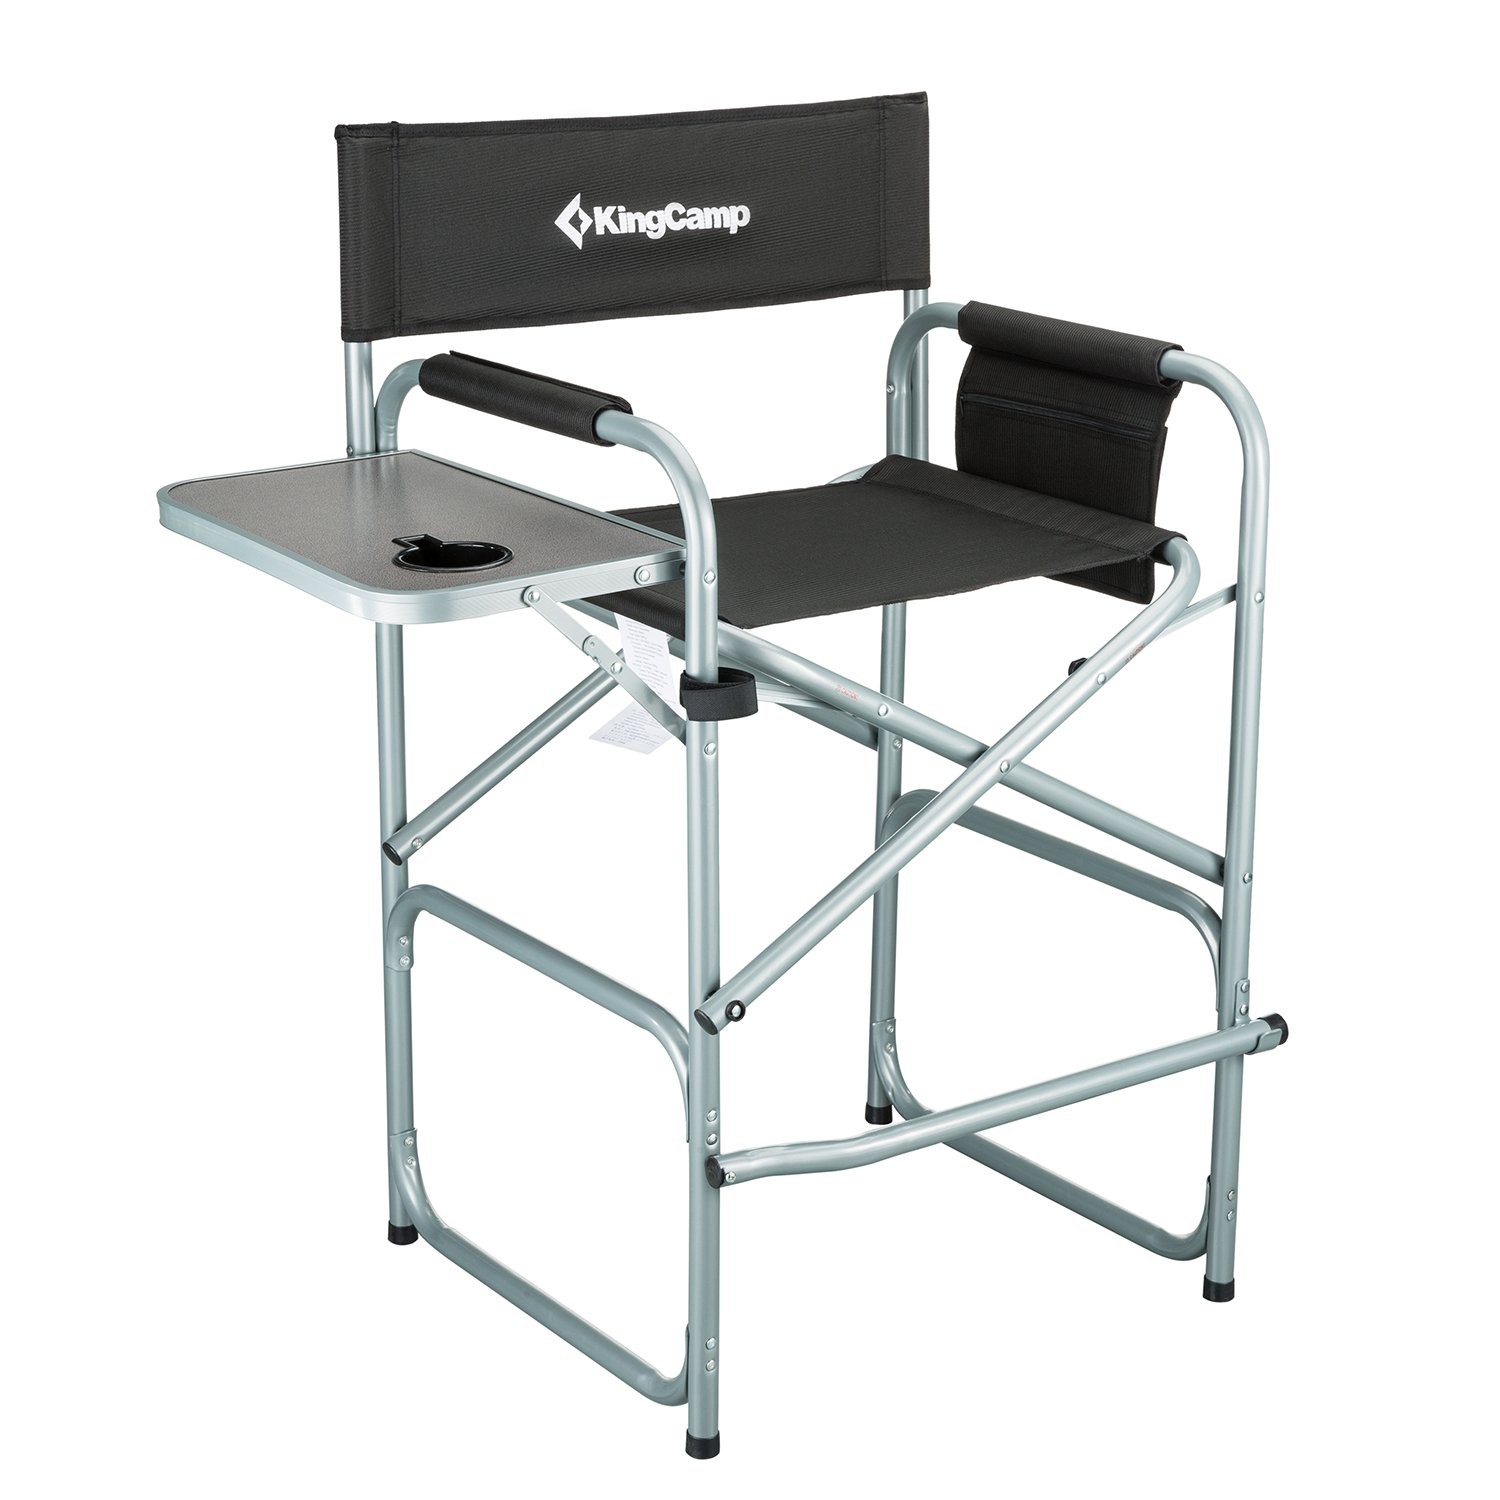 KingCamp Tall Director Chair Bar Height Steel Frame Collapsible with Side Table Cup Holder Side Storage Bag Footrest, Folding Portable, Supports 300 lbs by KingCamp